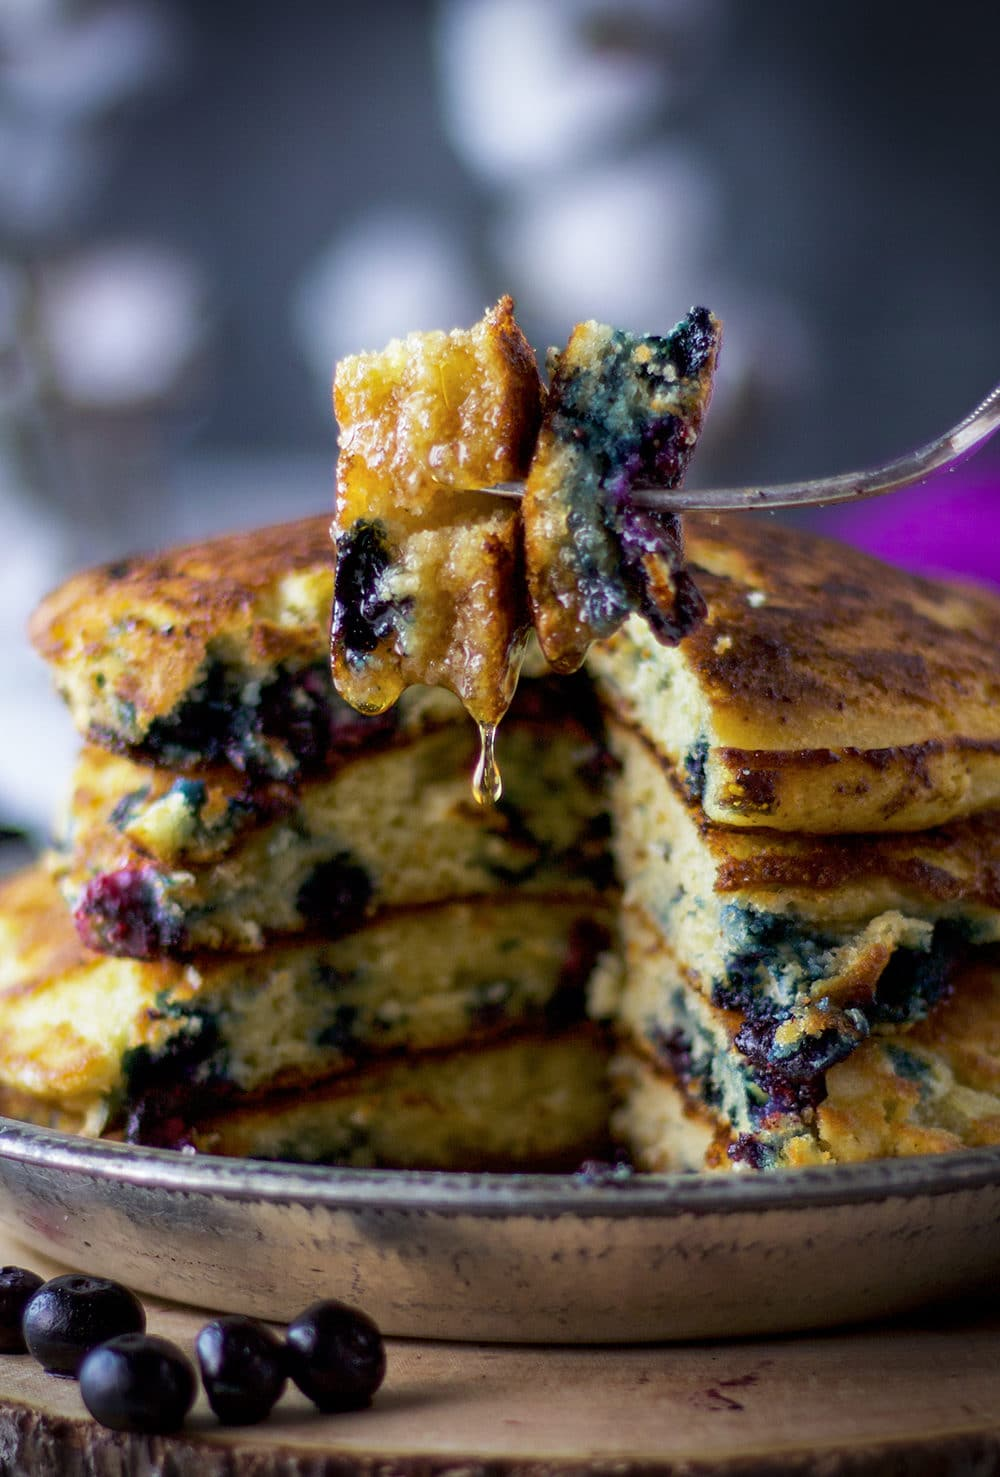 A bite of blueberry pancakes with maple syrup dripping from the fork.